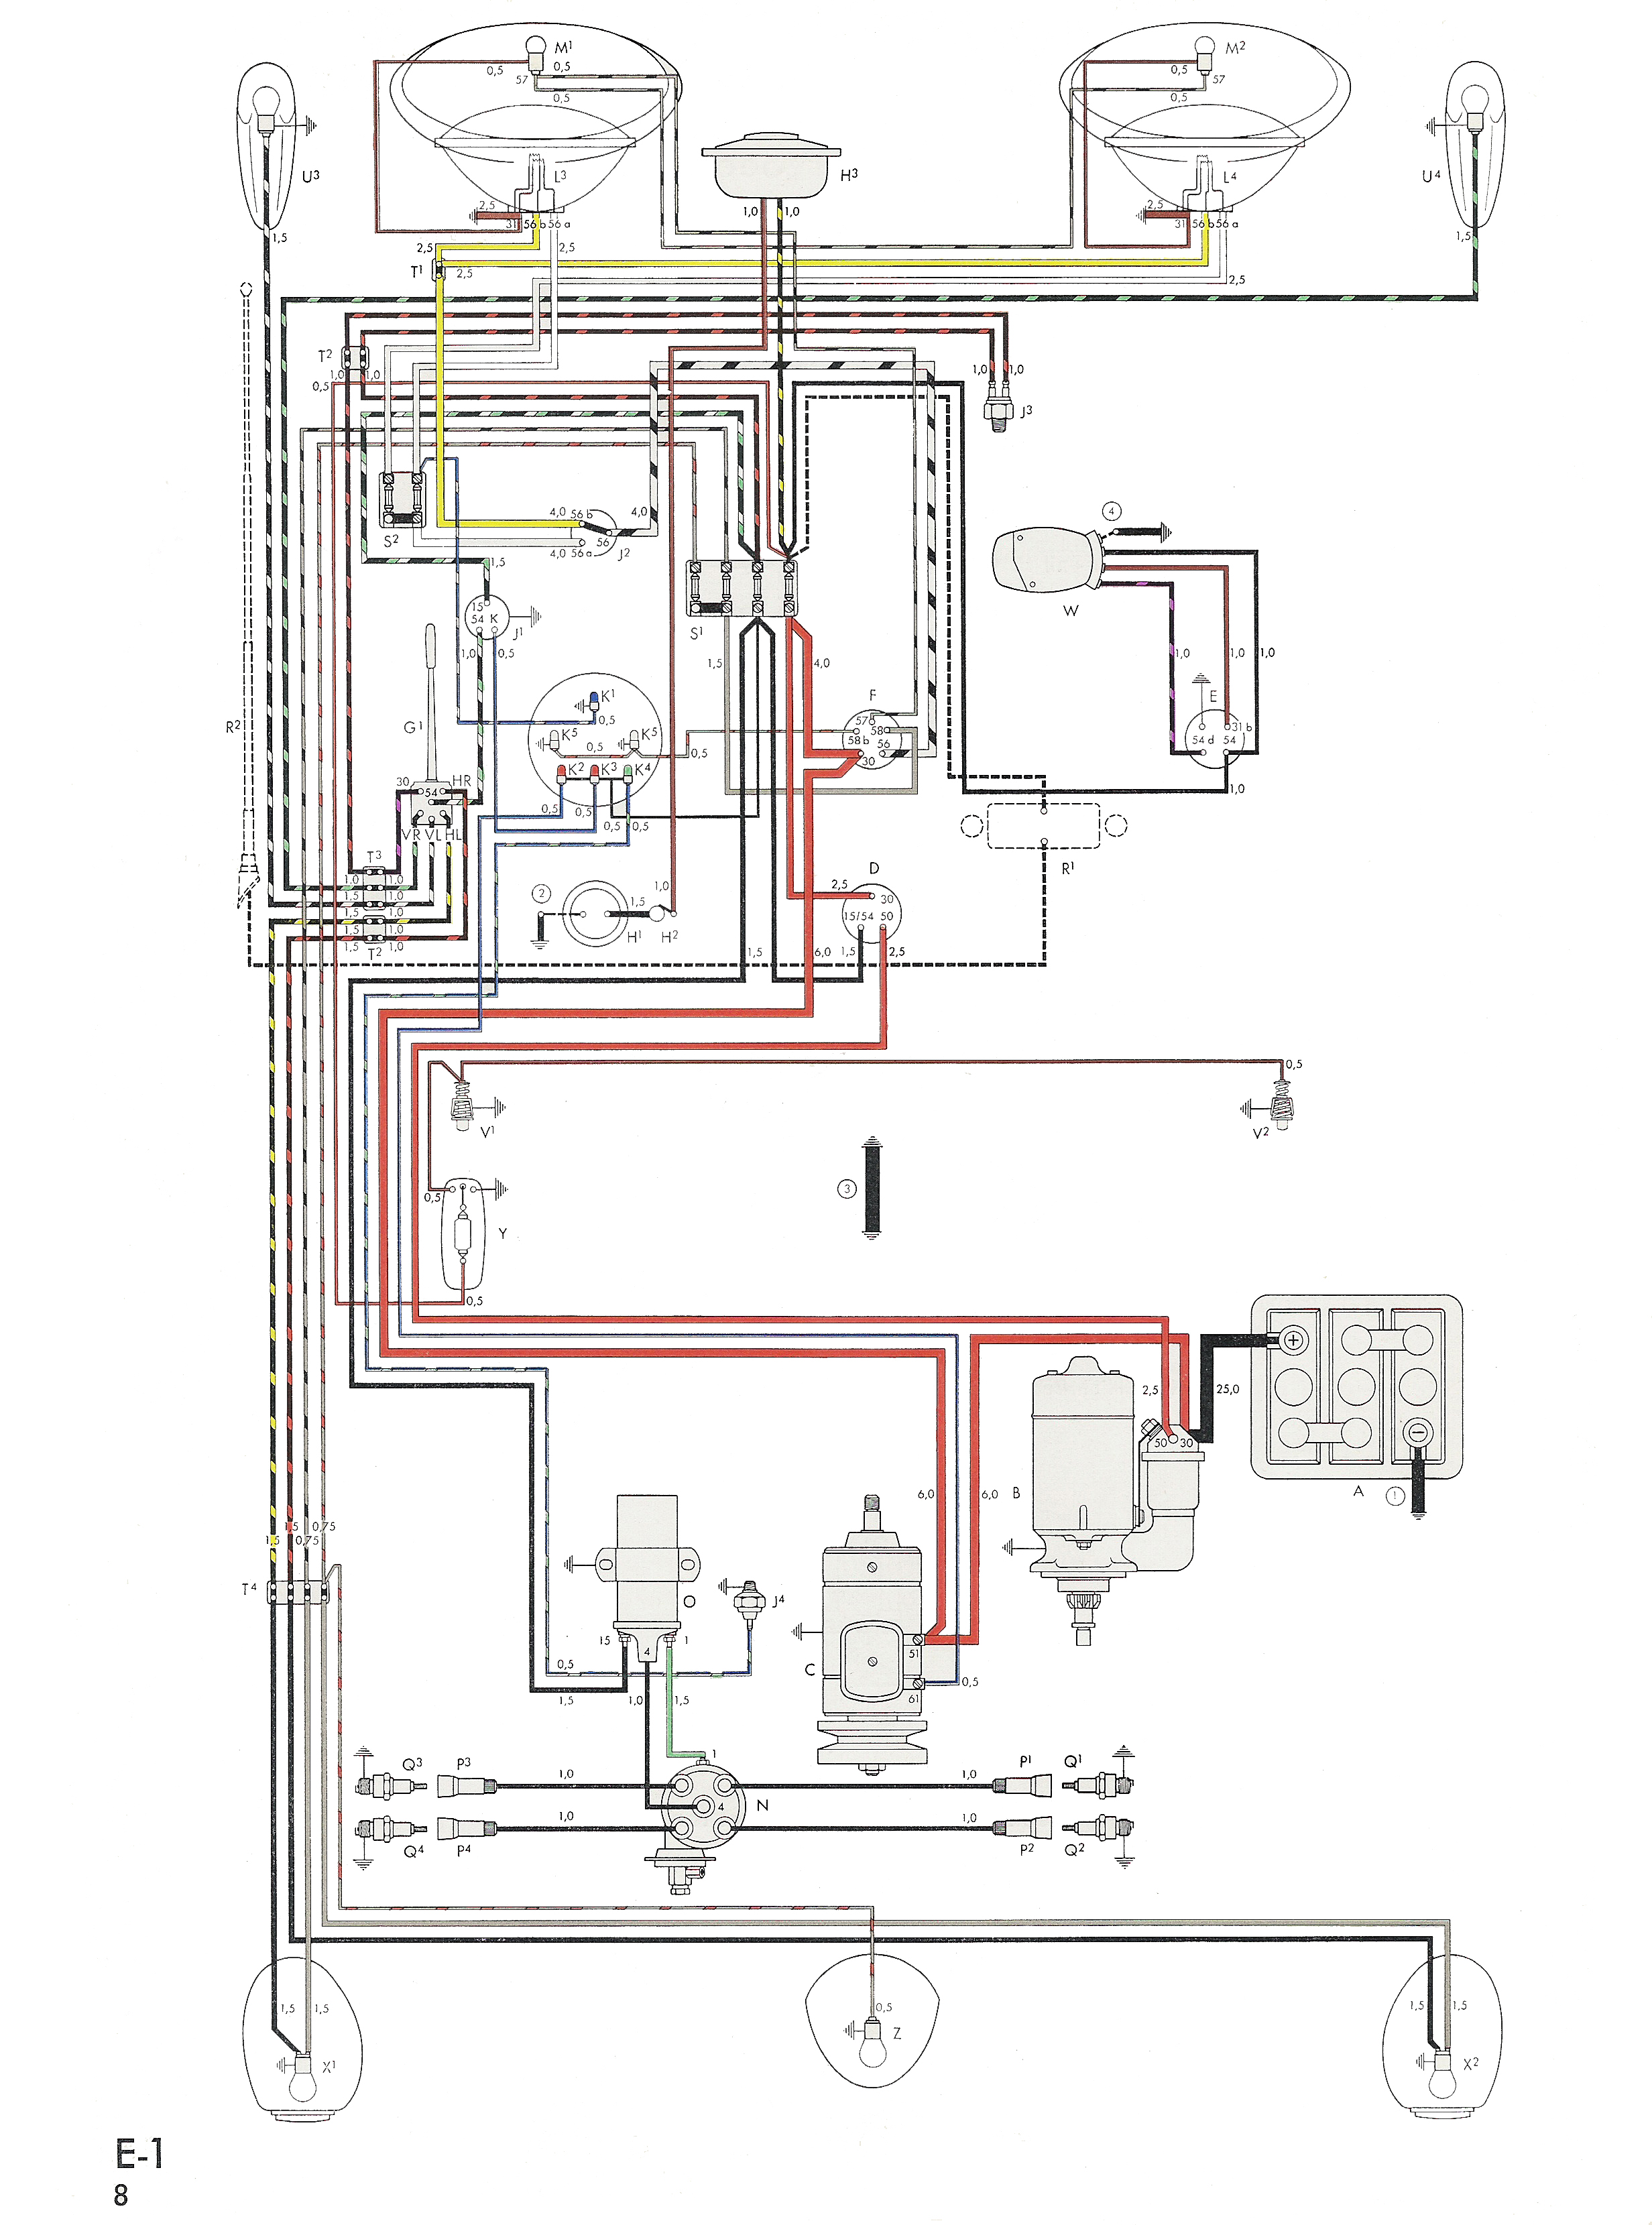 Light Wiring Diagrams Starting Know About Diagram Double Switch For Thesamba Com Type 1 2 Way